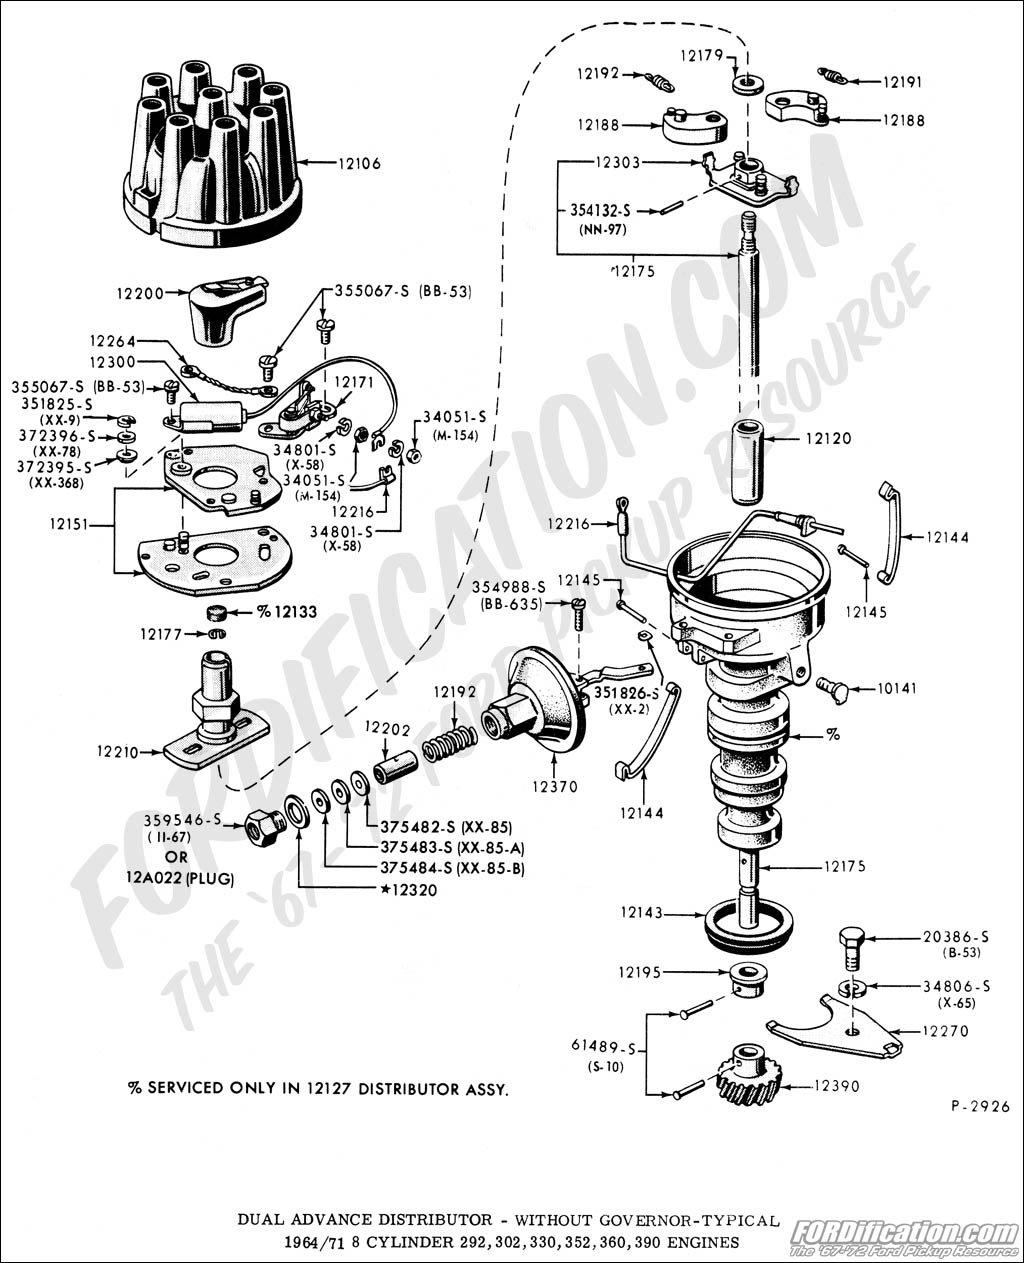 distributor wiring diagram for 84 ford bronco residential rh bookmyad co 78 Ford Bronco Wiring Diagram 78 Ford Bronco Wiring Diagram